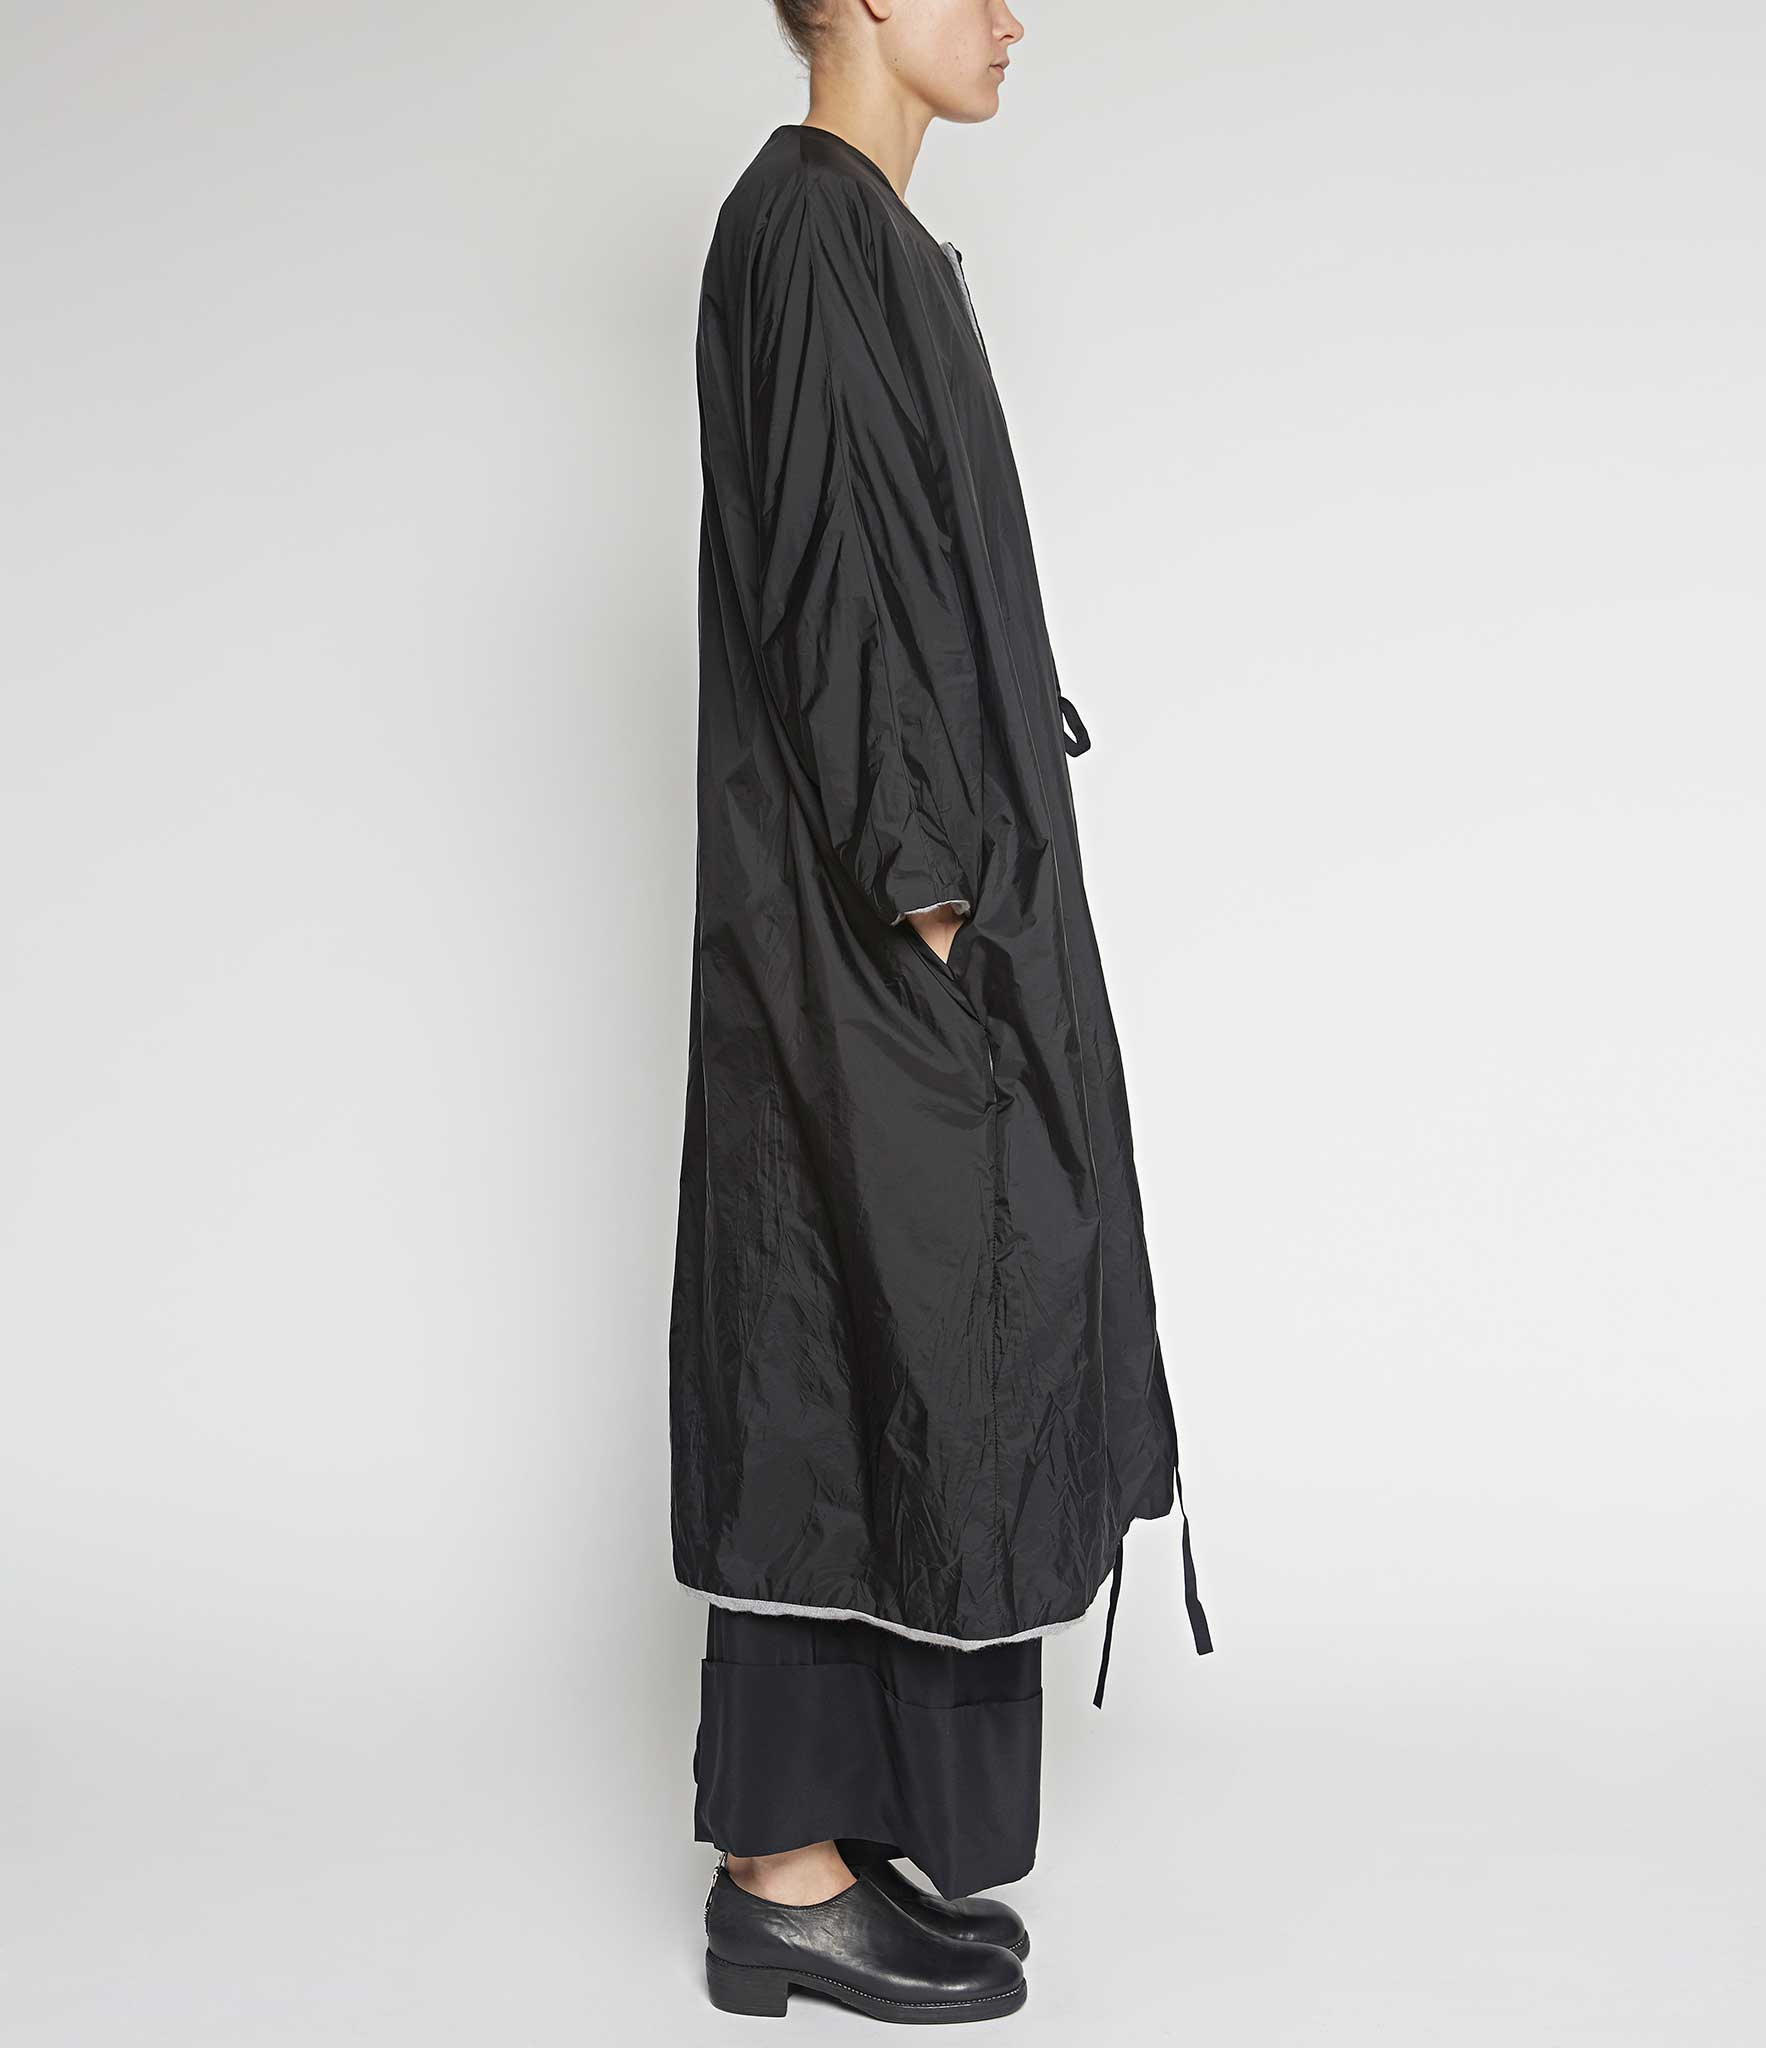 Daniela Gregis Reversible Wool Coat